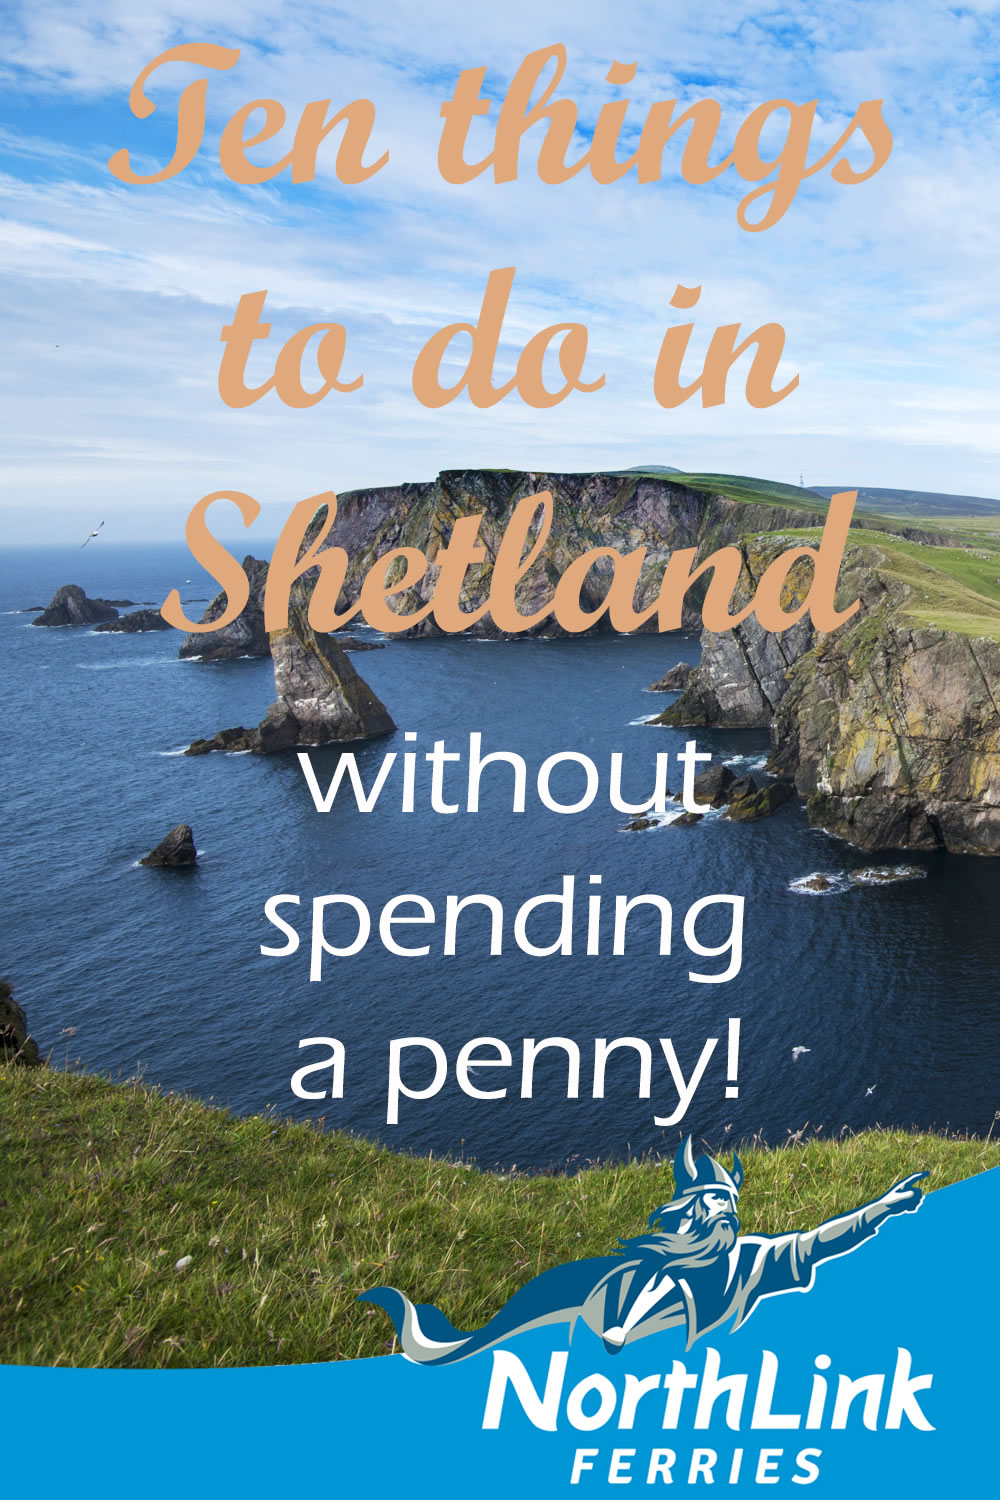 Ten things to do in Shetland without spending a penny!